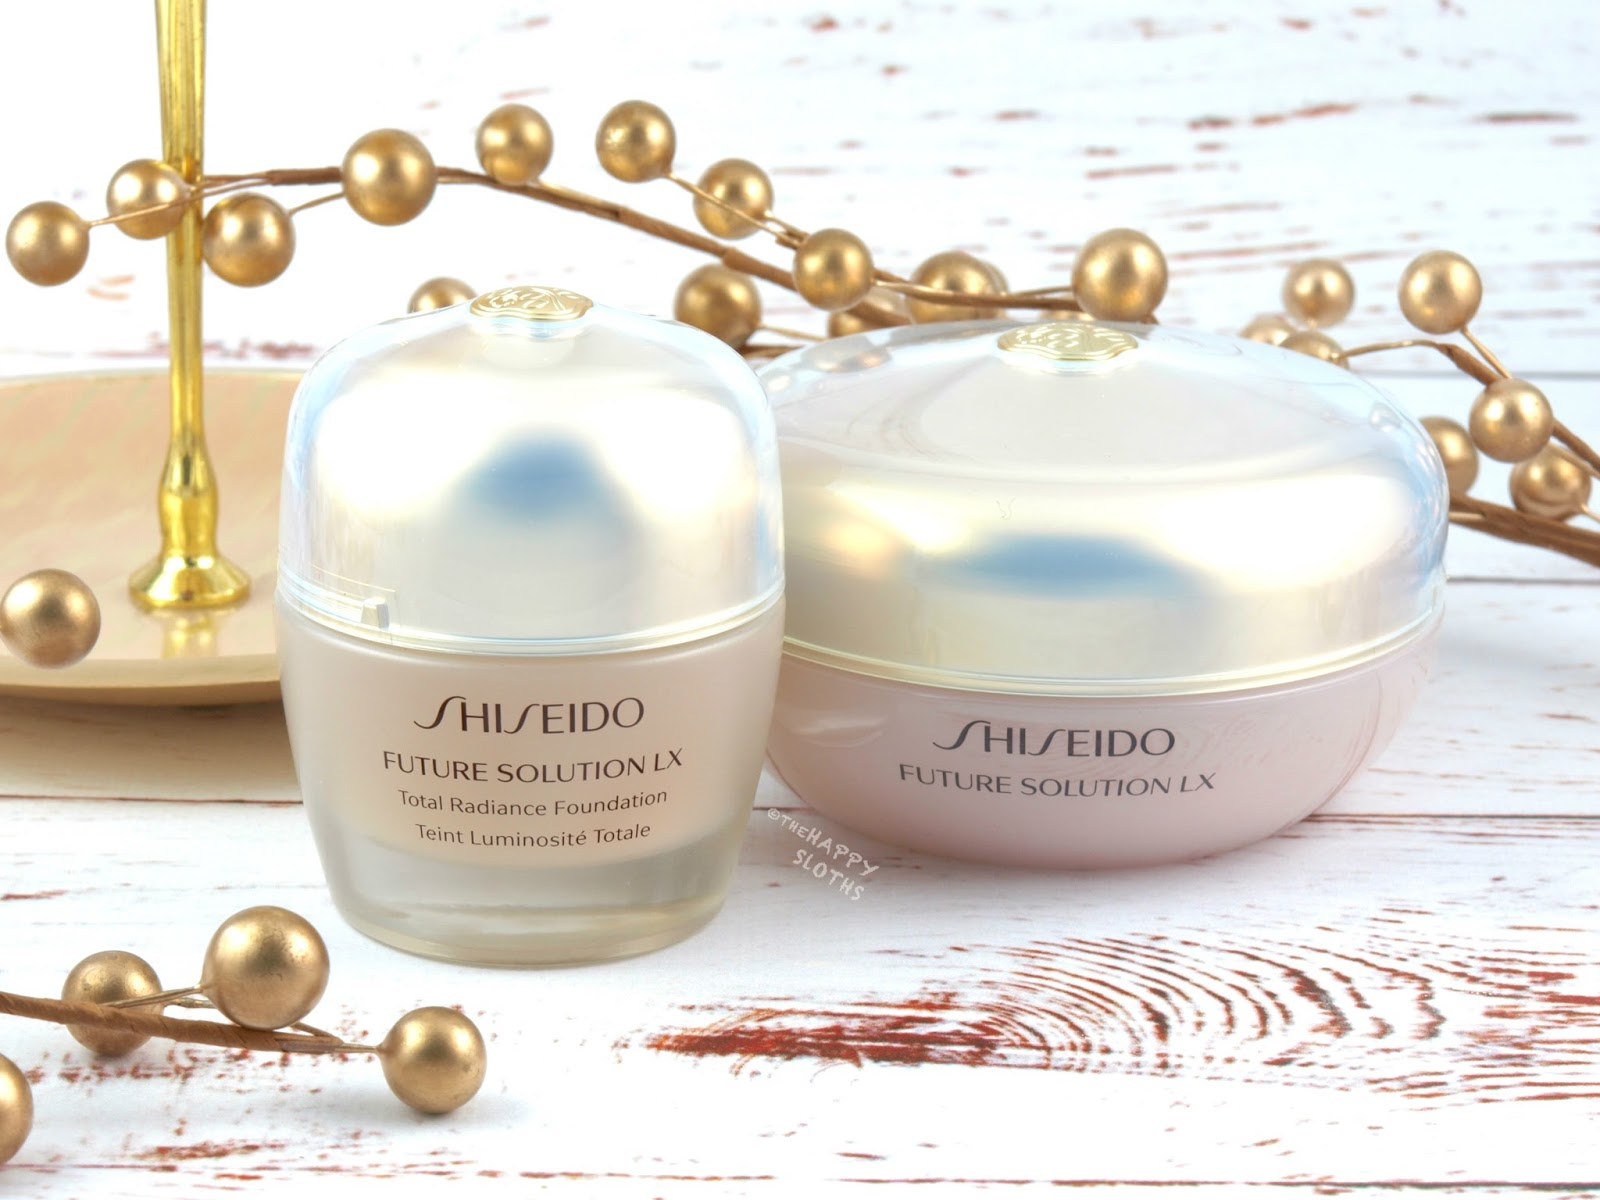 Shiseido | Future Solution LX Total Radiance Foundation & Loose Powder: Review